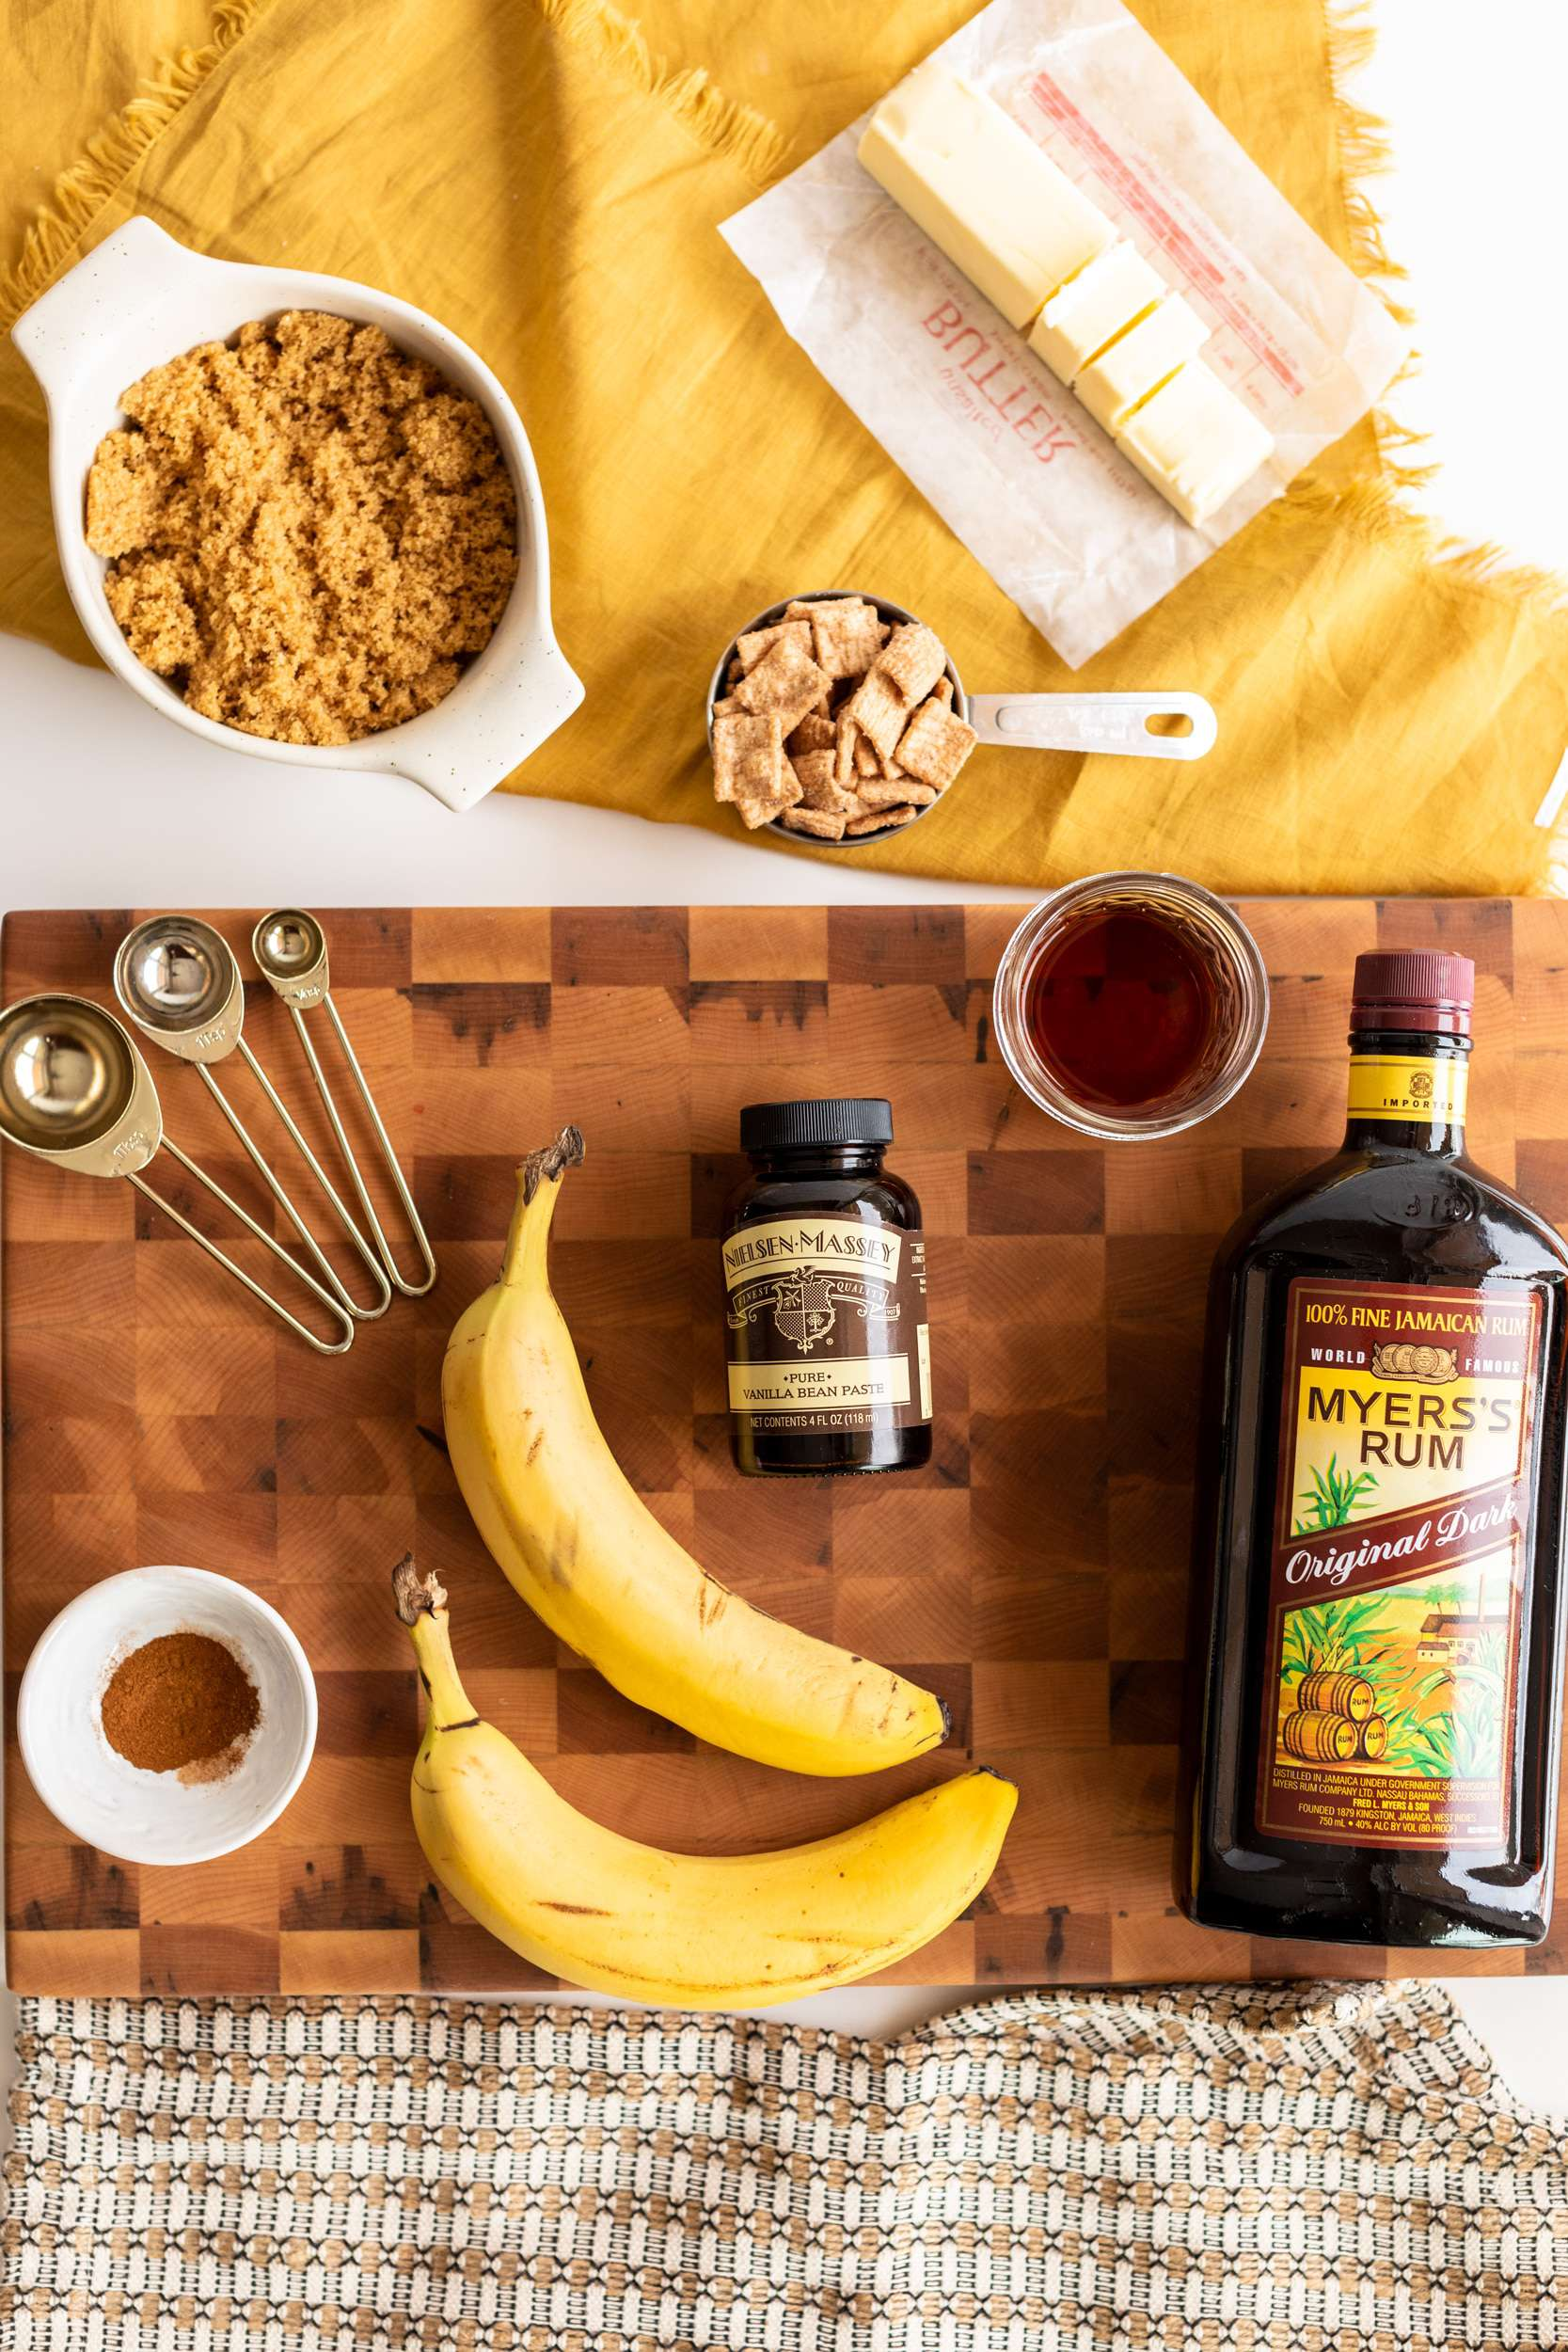 Bananas Foster with Cinnamon Toast Crunch Crumble Ingredients